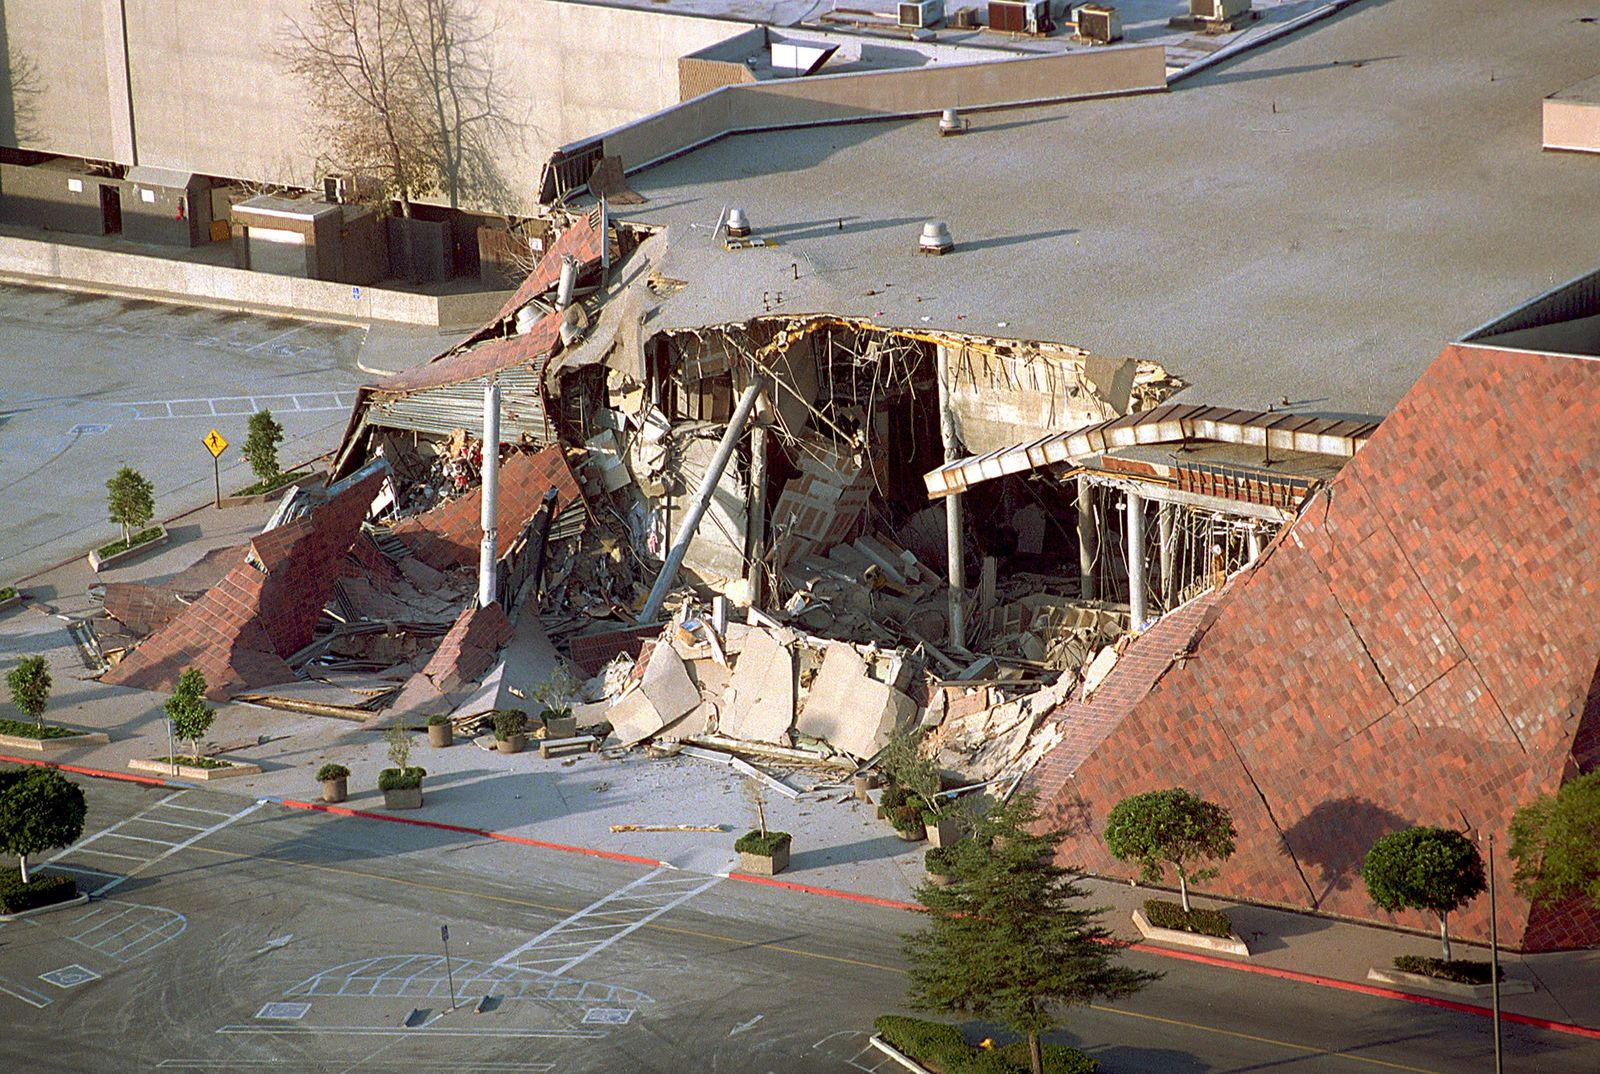 FILE - This Jan. 17, 1994 file photo shows a portion of the Bullock's department store in Los Angeles' Northridge Fashion Center that collapsed in the Northridge earthquake. Twenty-five years ago this week, a violent, pre-dawn earthquake shook Los Angeles from its sleep, and sunrise revealed widespread devastation, with dozens killed and $25 billion in damage. (AP Photo/Reed Saxon, File)